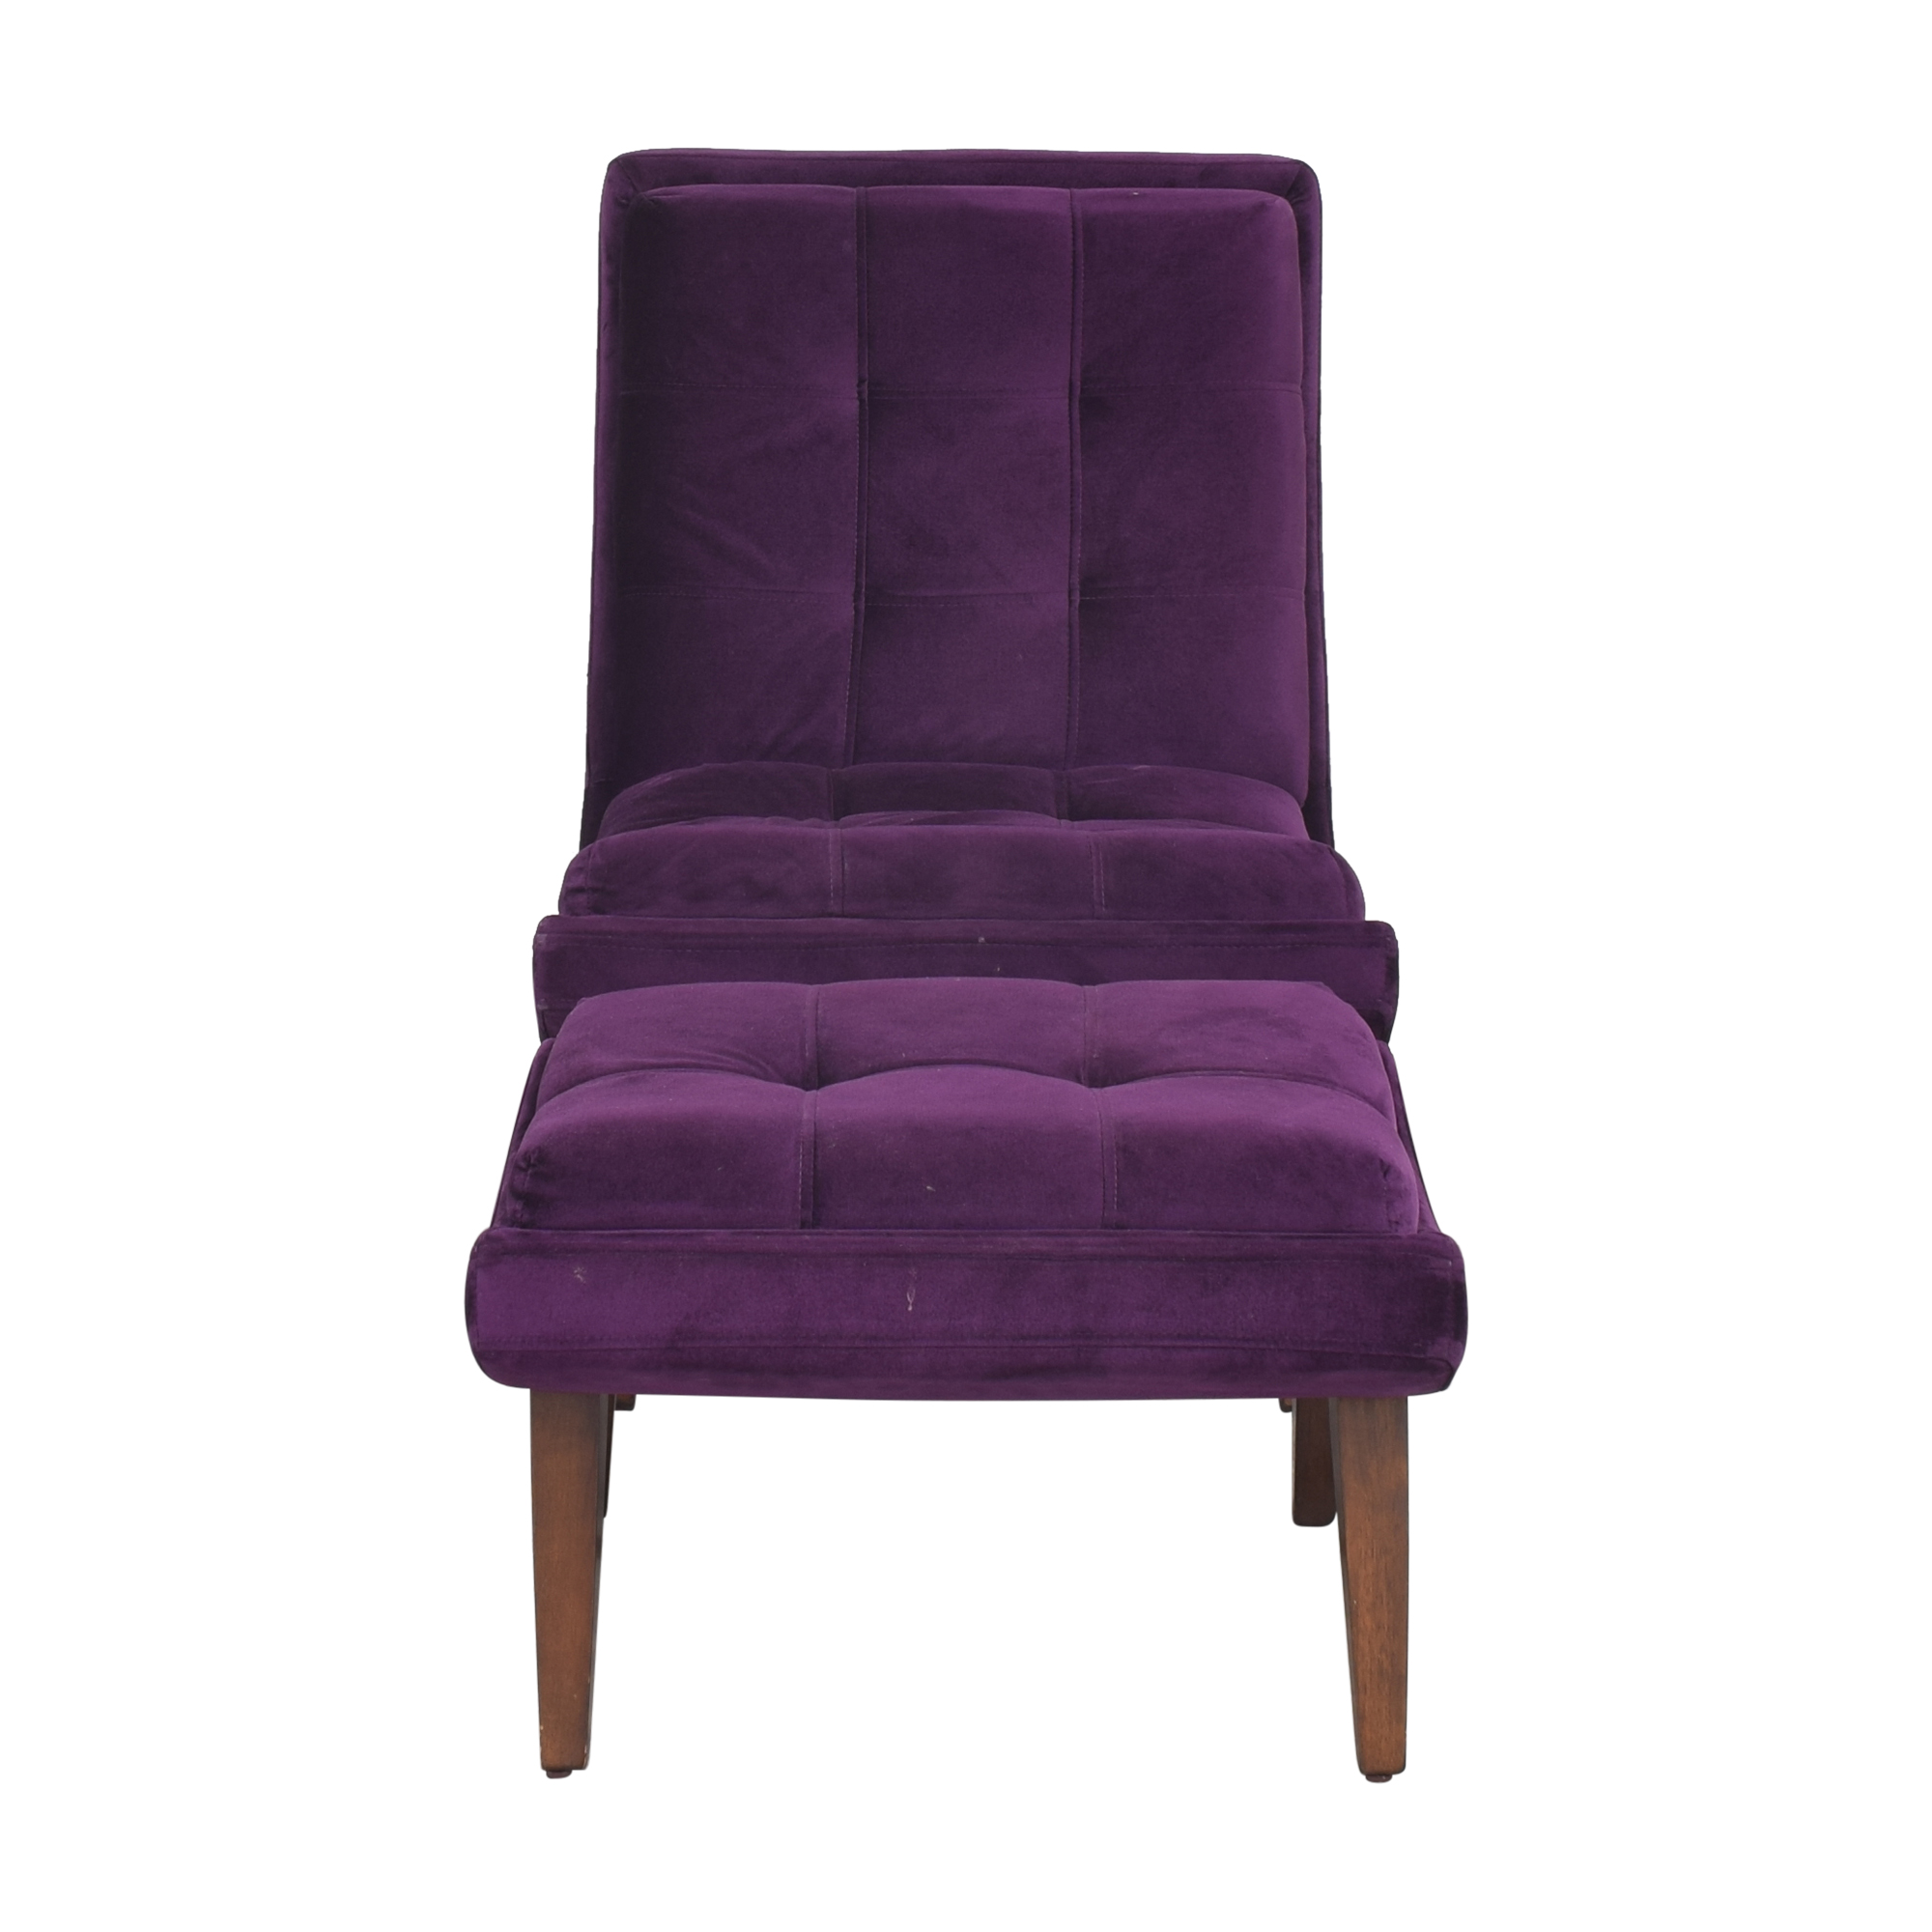 Tufted Accent Chair with Ottoman Chairs